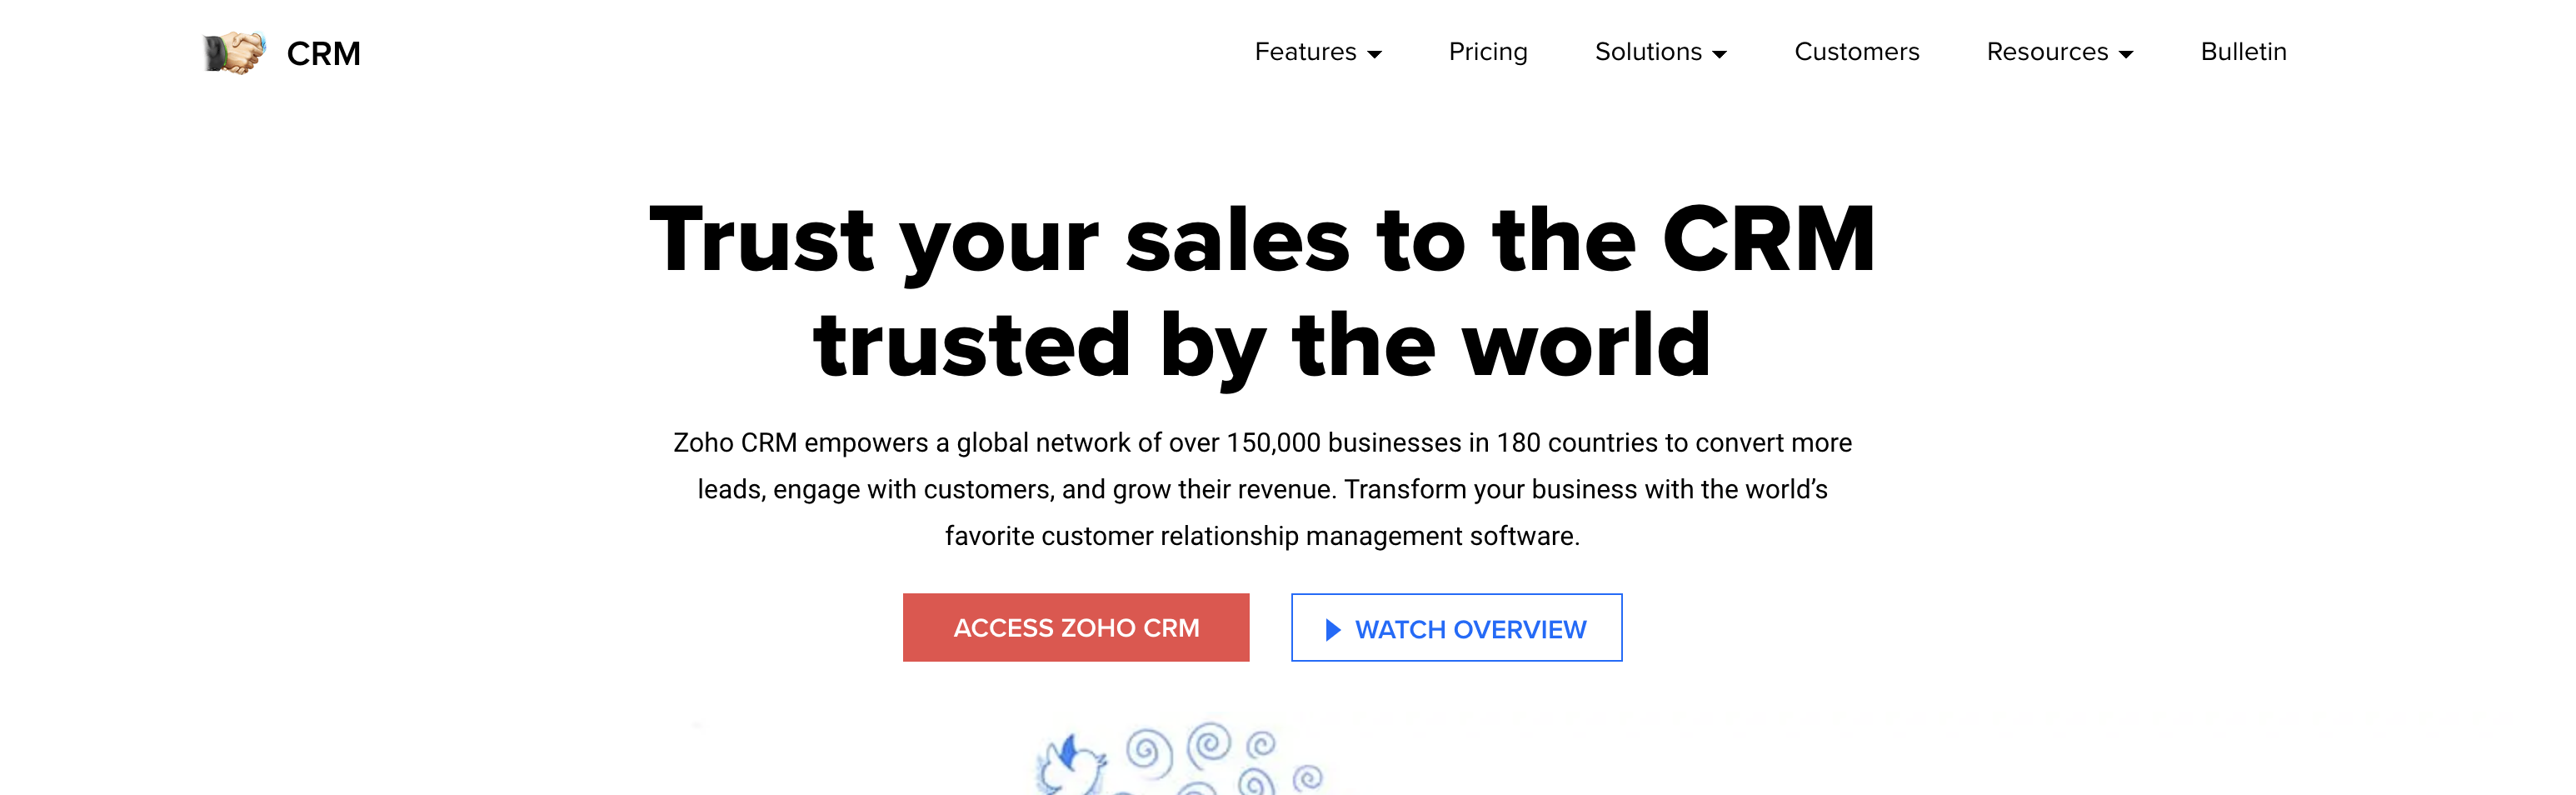 Review Zoho CRM: Online CRM to manage sales, marketing and support - appvizer